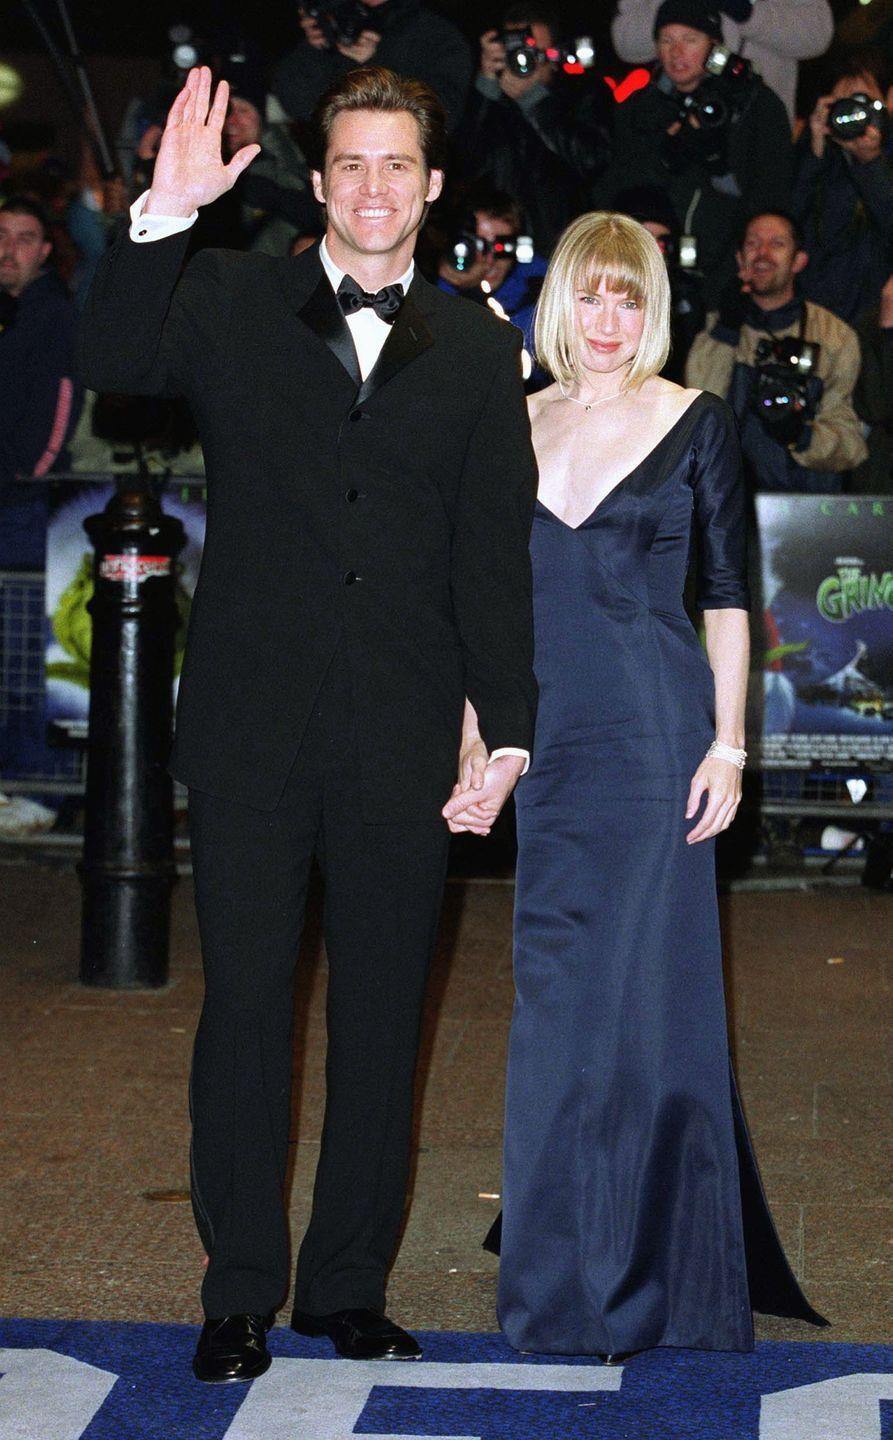 <p>Jim Carrey and Renée Zellweger looked polished in a classic tux and navy gown as they made their way to the reception line to meet the Queen at Carrey's film premiere for <em>The Grinch</em><em>.</em></p>